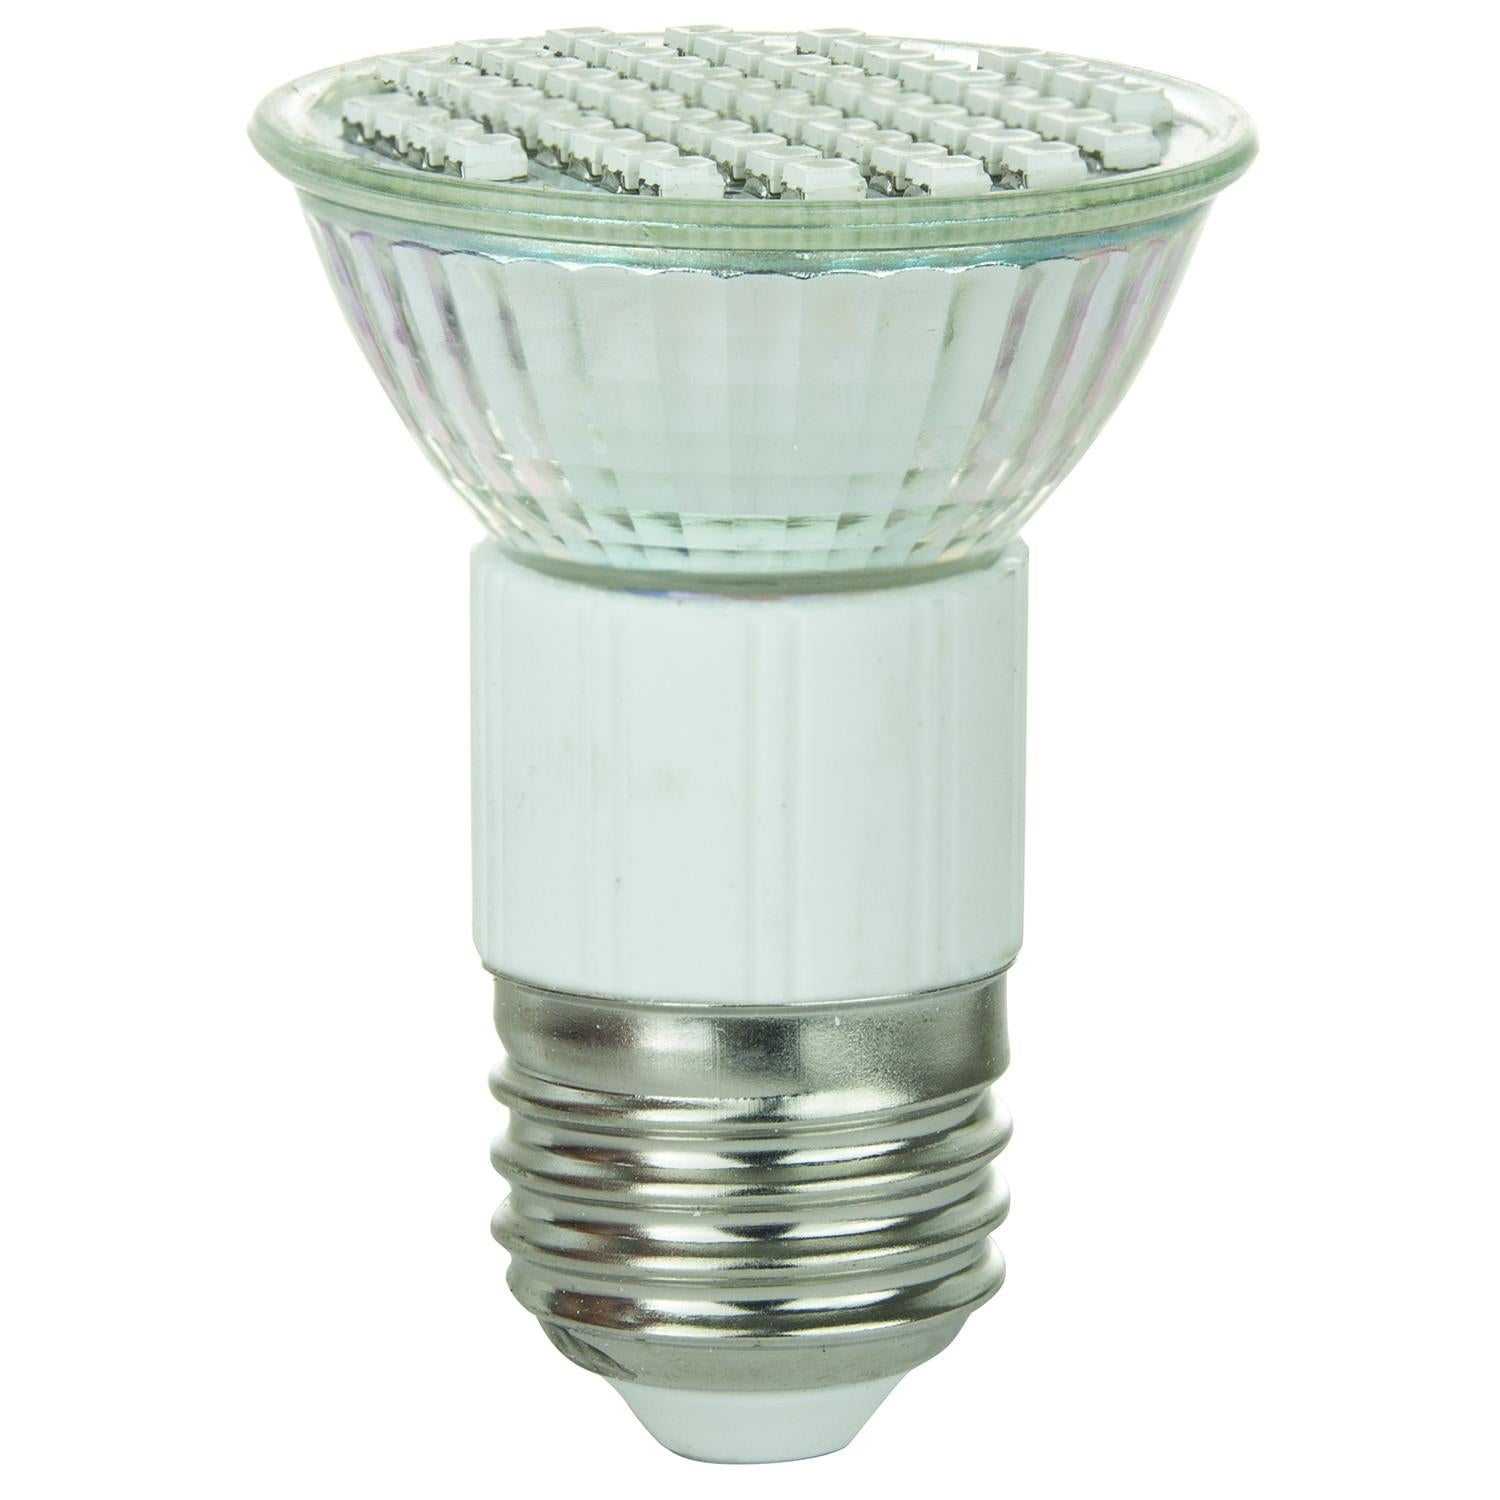 SUNLITE 80194-SU LED JDR MR16 Mini Reflector 2.8w Light Bulb White 6500K